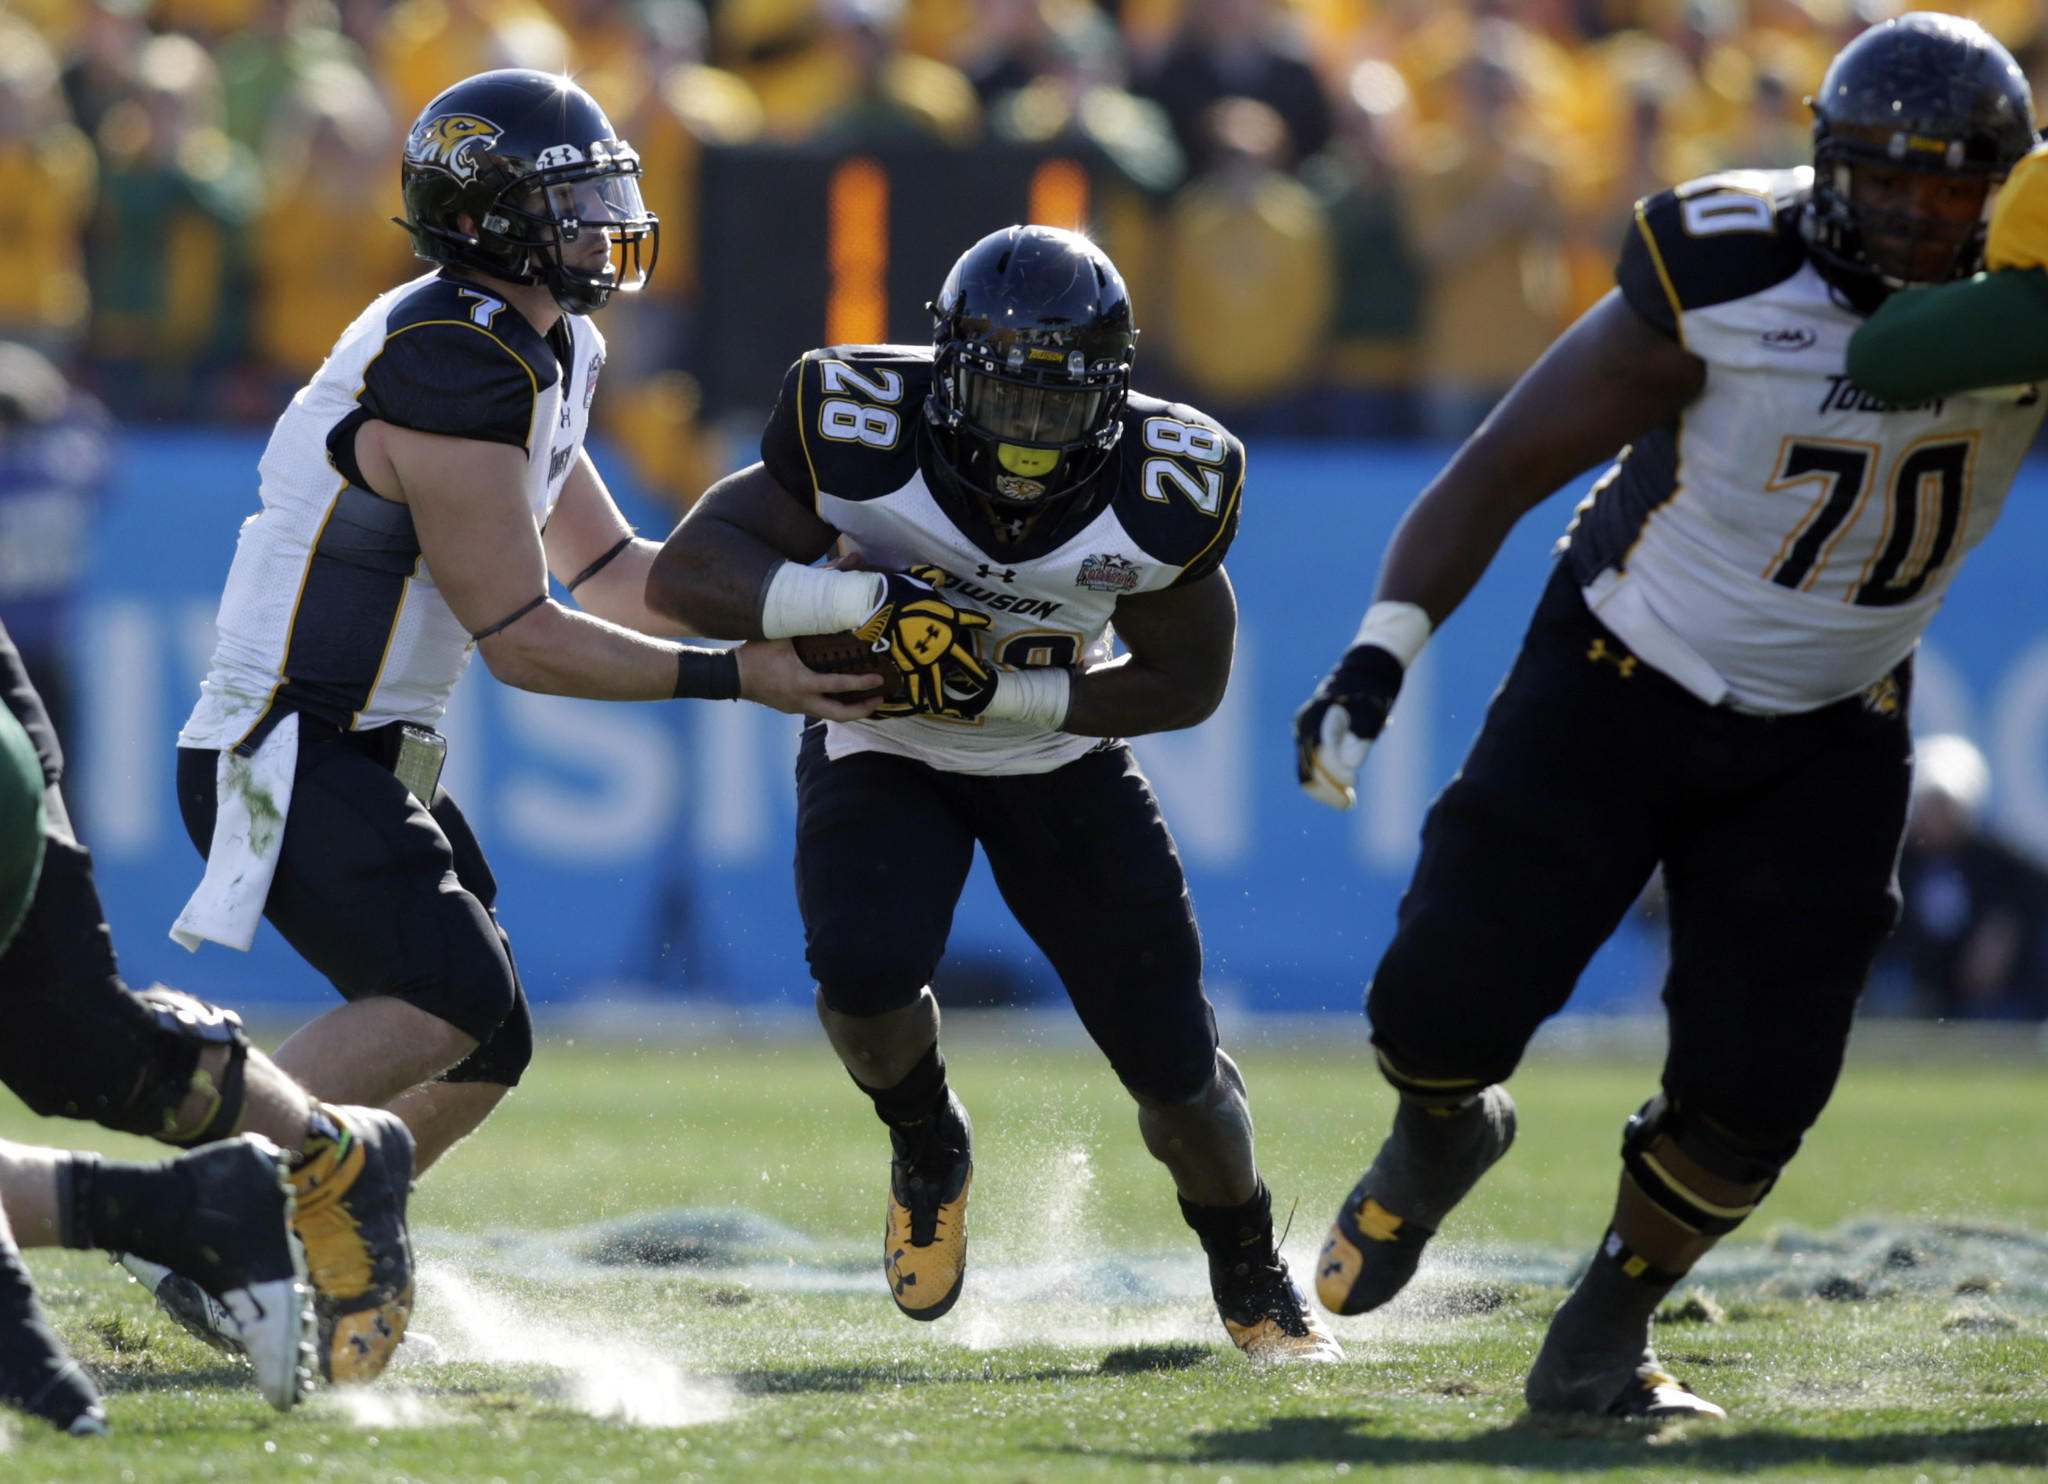 Towson's Peter Athens hands the ball off to Terrance West in the second quarter at Toyota Stadium, whose field condition drew criticism.